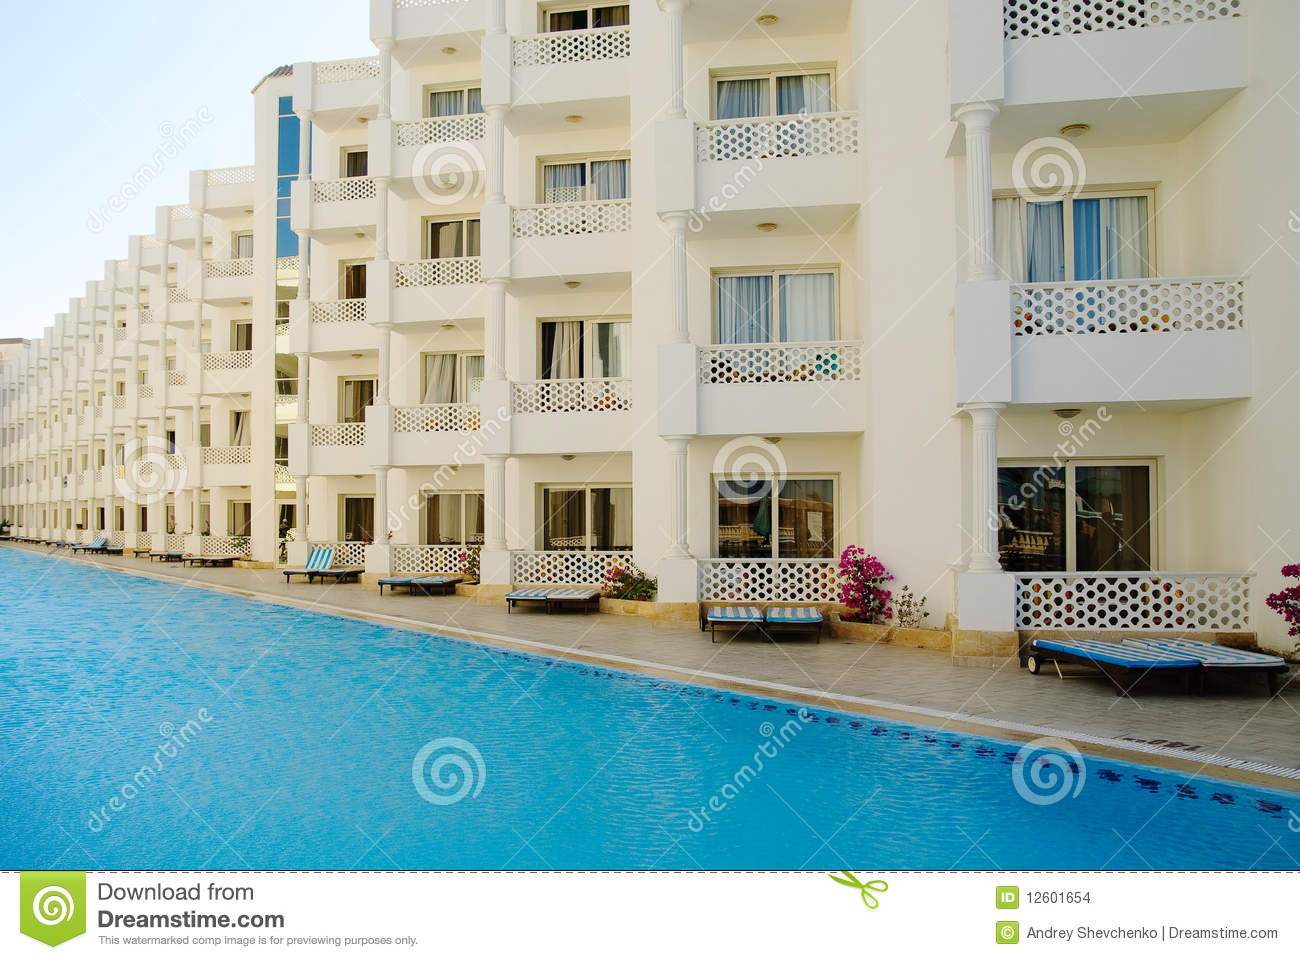 Modern Hotel rchitecture Stock Images - Image: 12601654 - ^